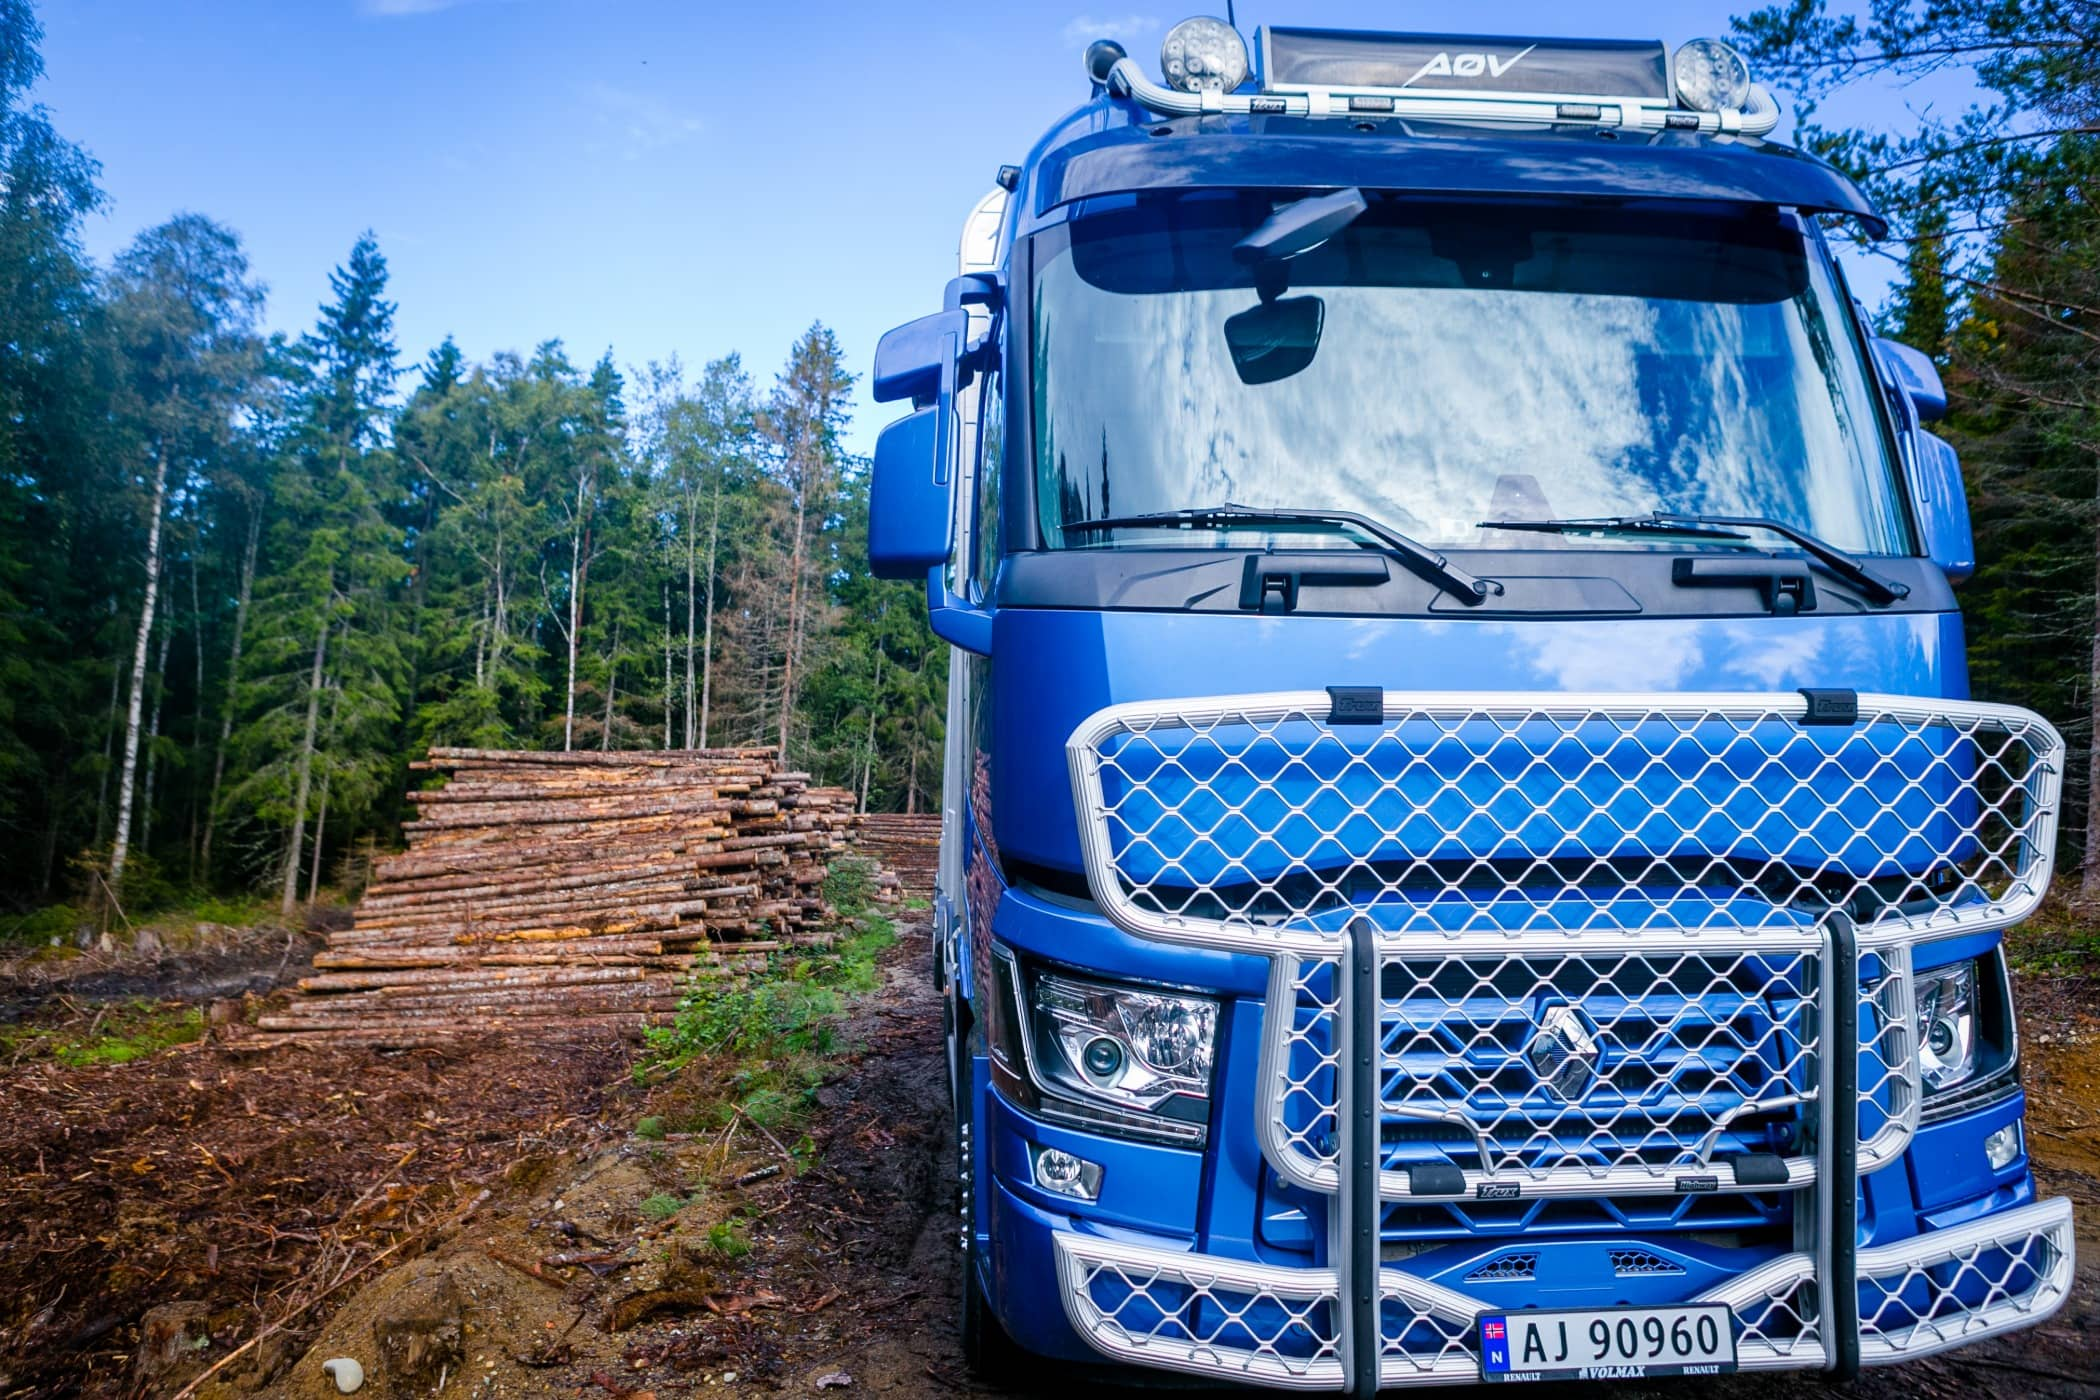 Mode of transport, Automotive tire, Commercial vehicle, Blue, Nature, Truck